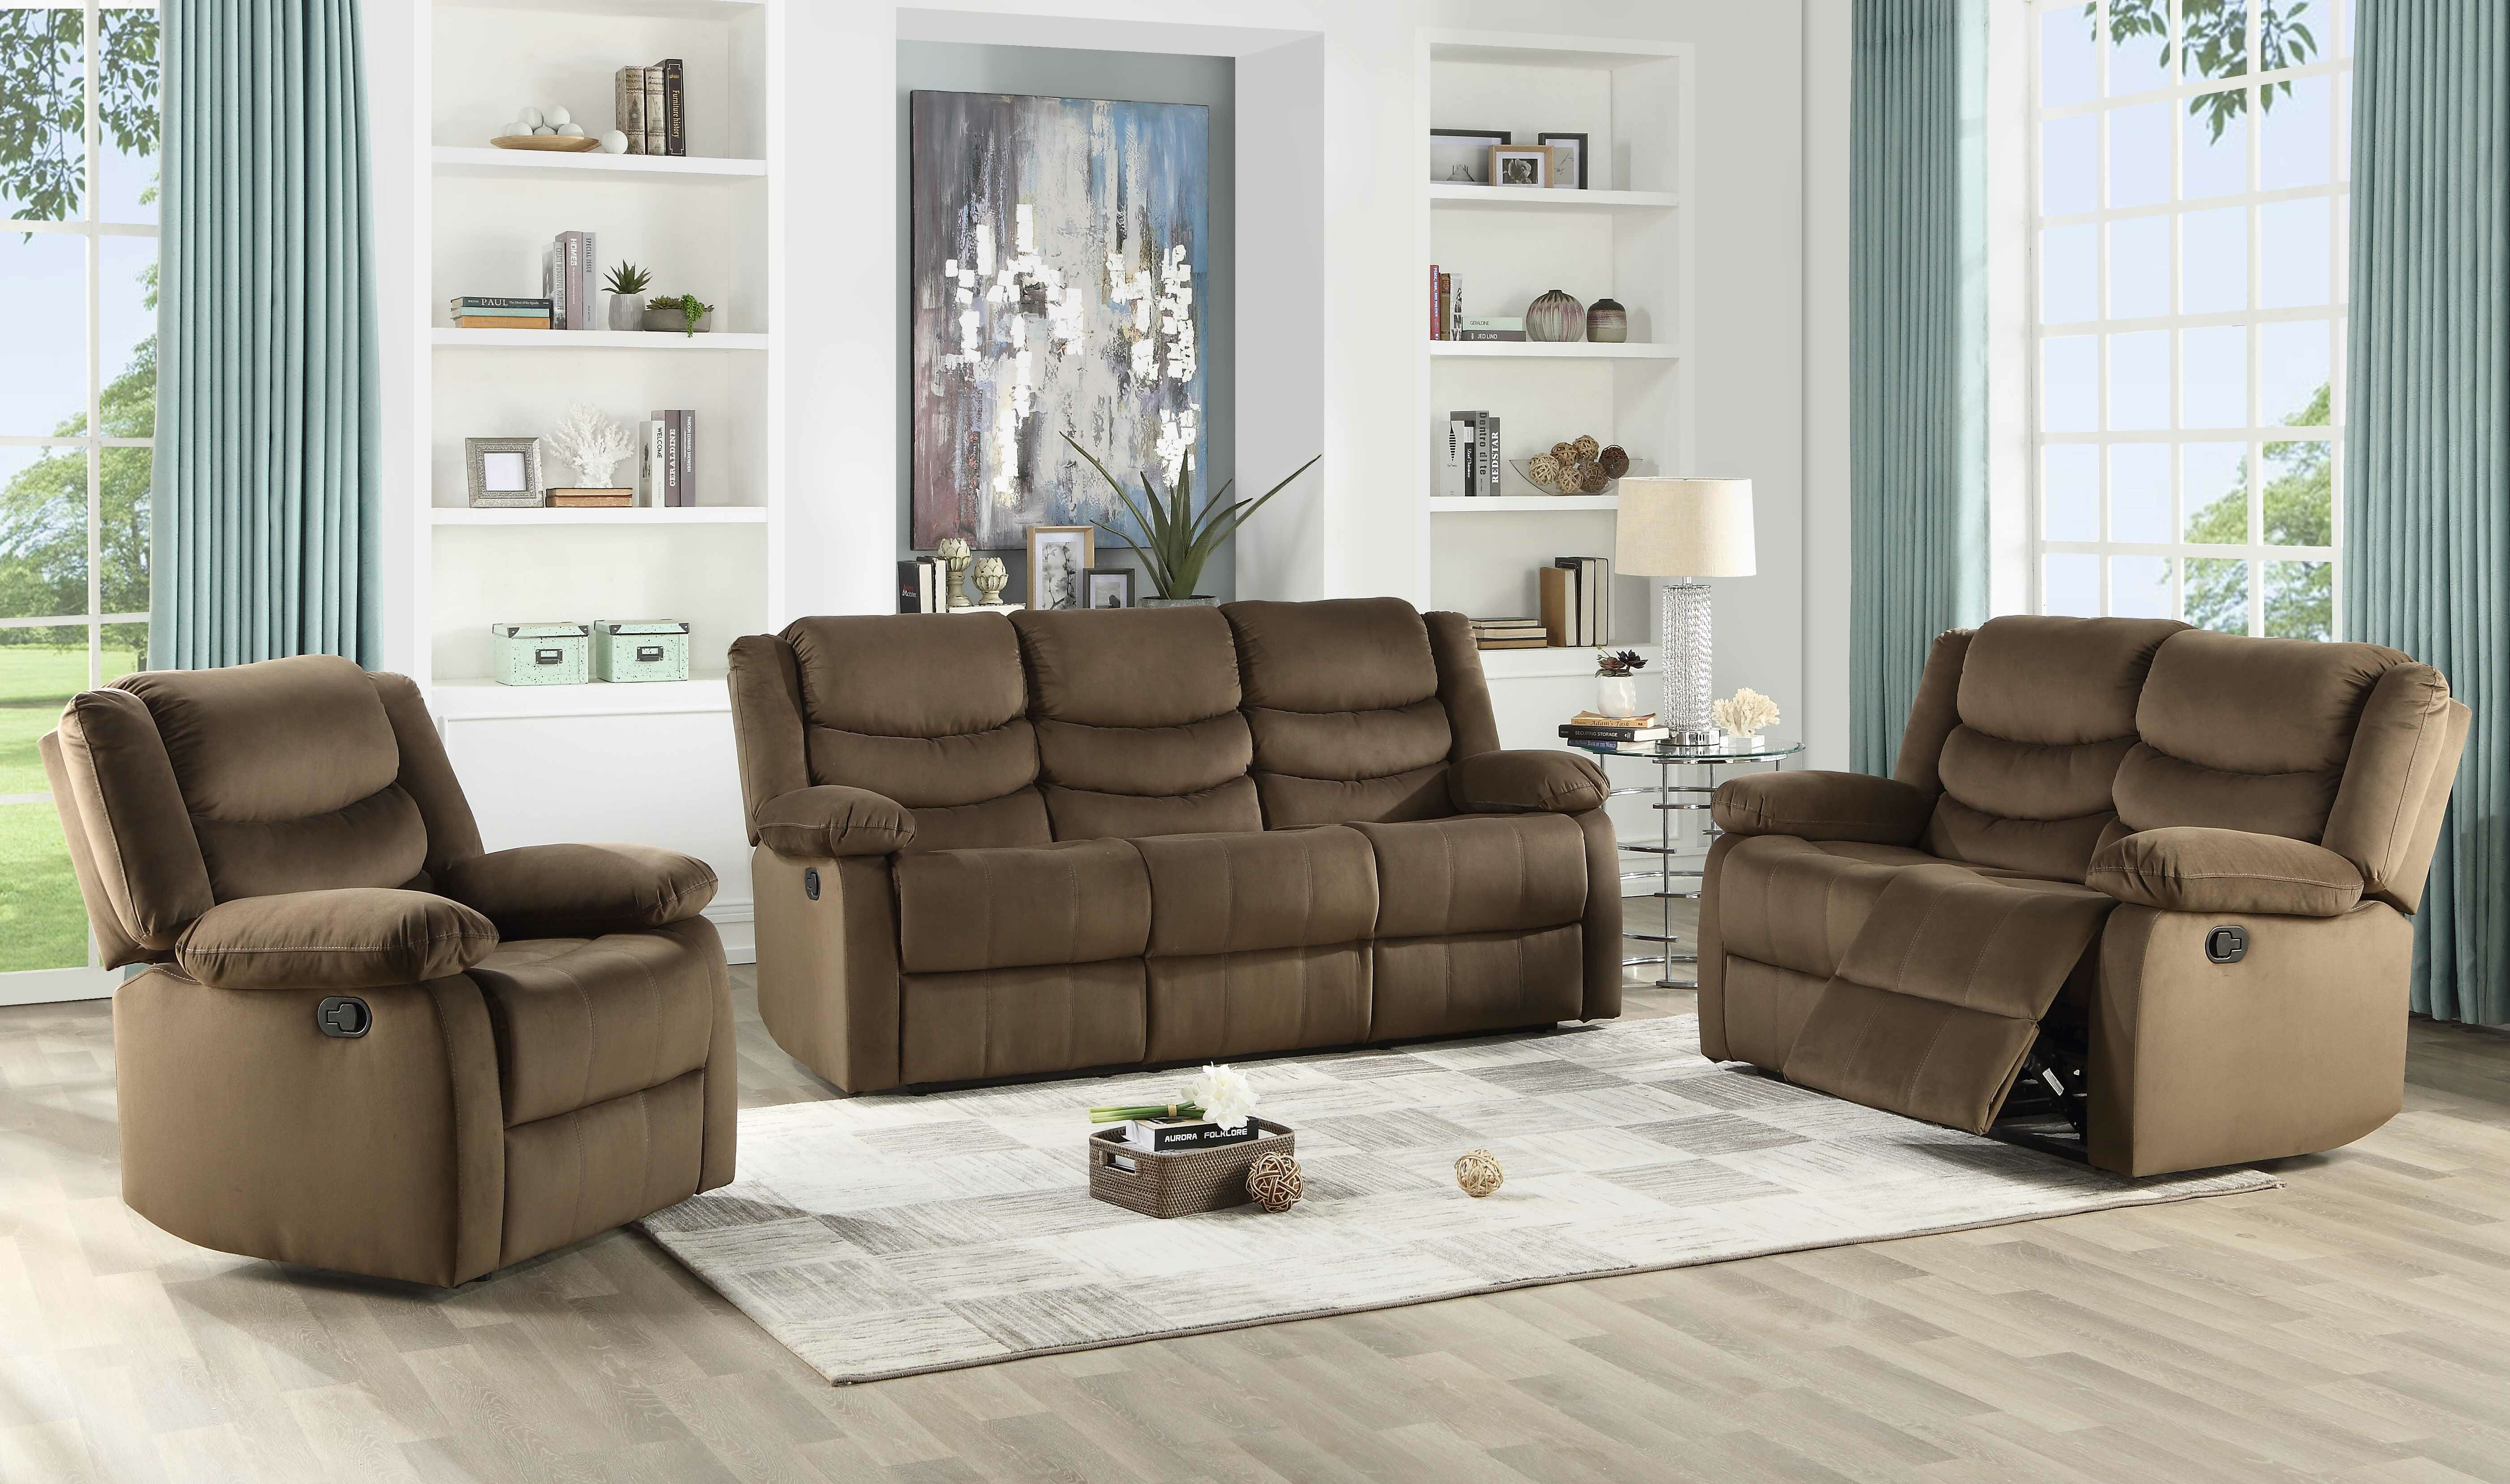 Medved 3 Piece Reclining Living Room Set throughout Room To Go Living Room Set